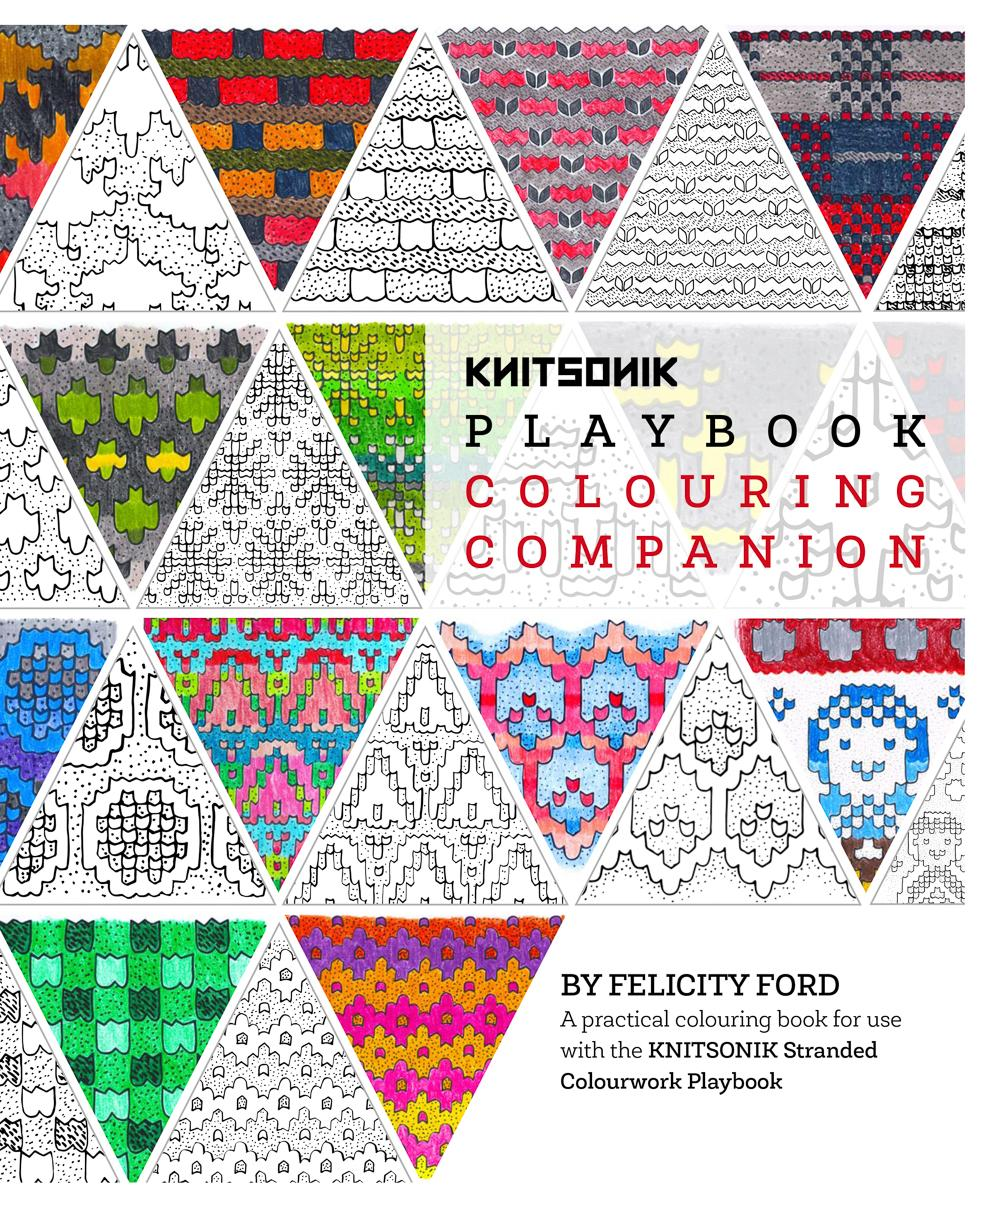 KNITSONIK Playbook Colouring Companion cover